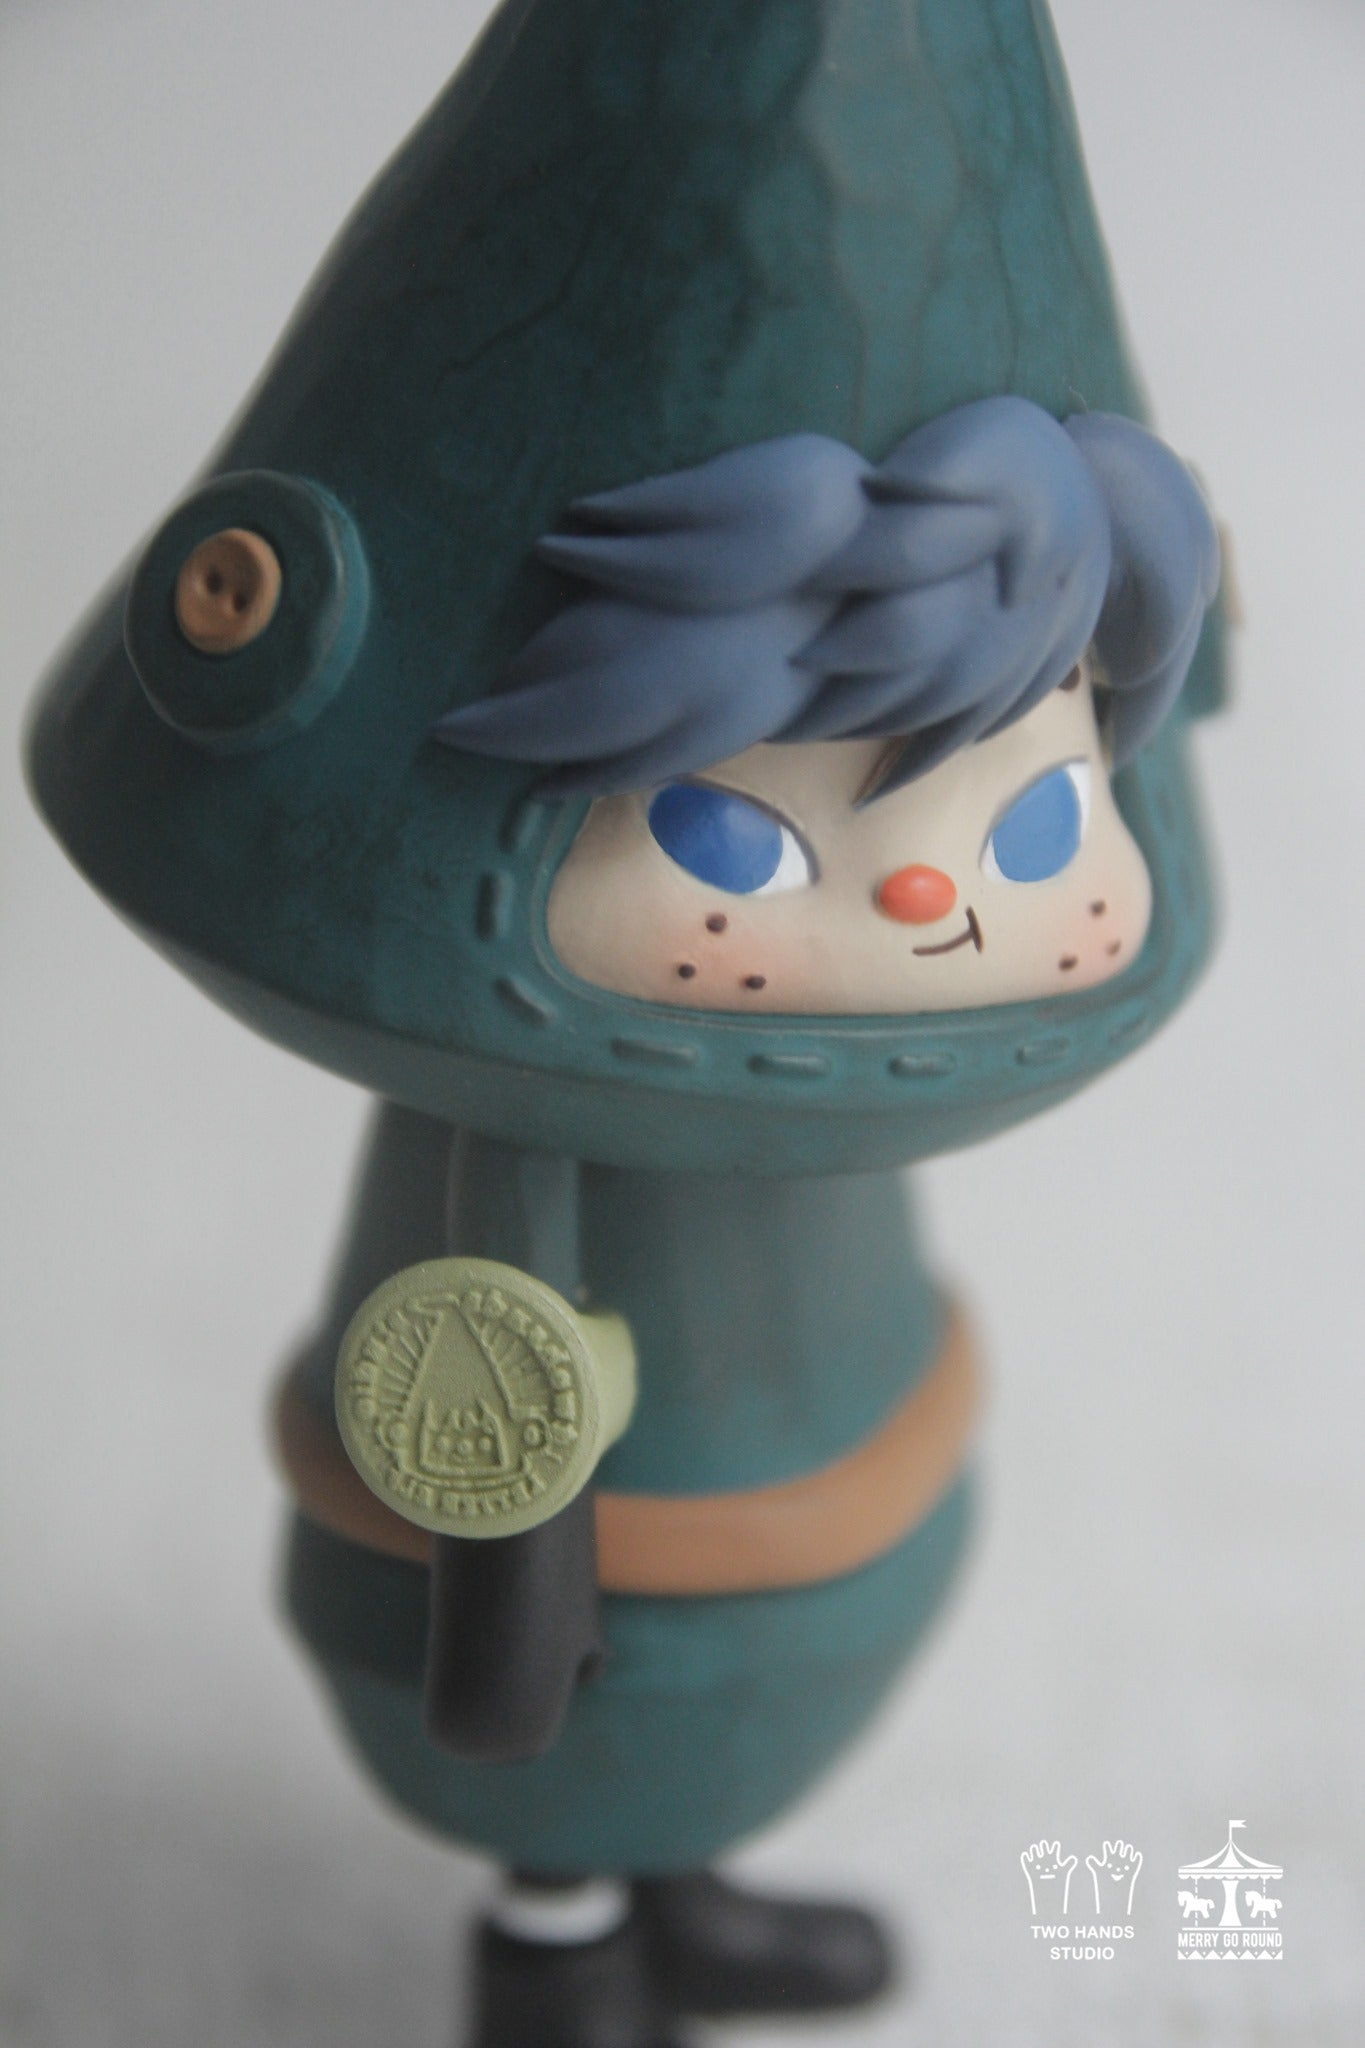 Lil' Letter Elf - Green Lake by Two Hands Studio x MGR - Preorder